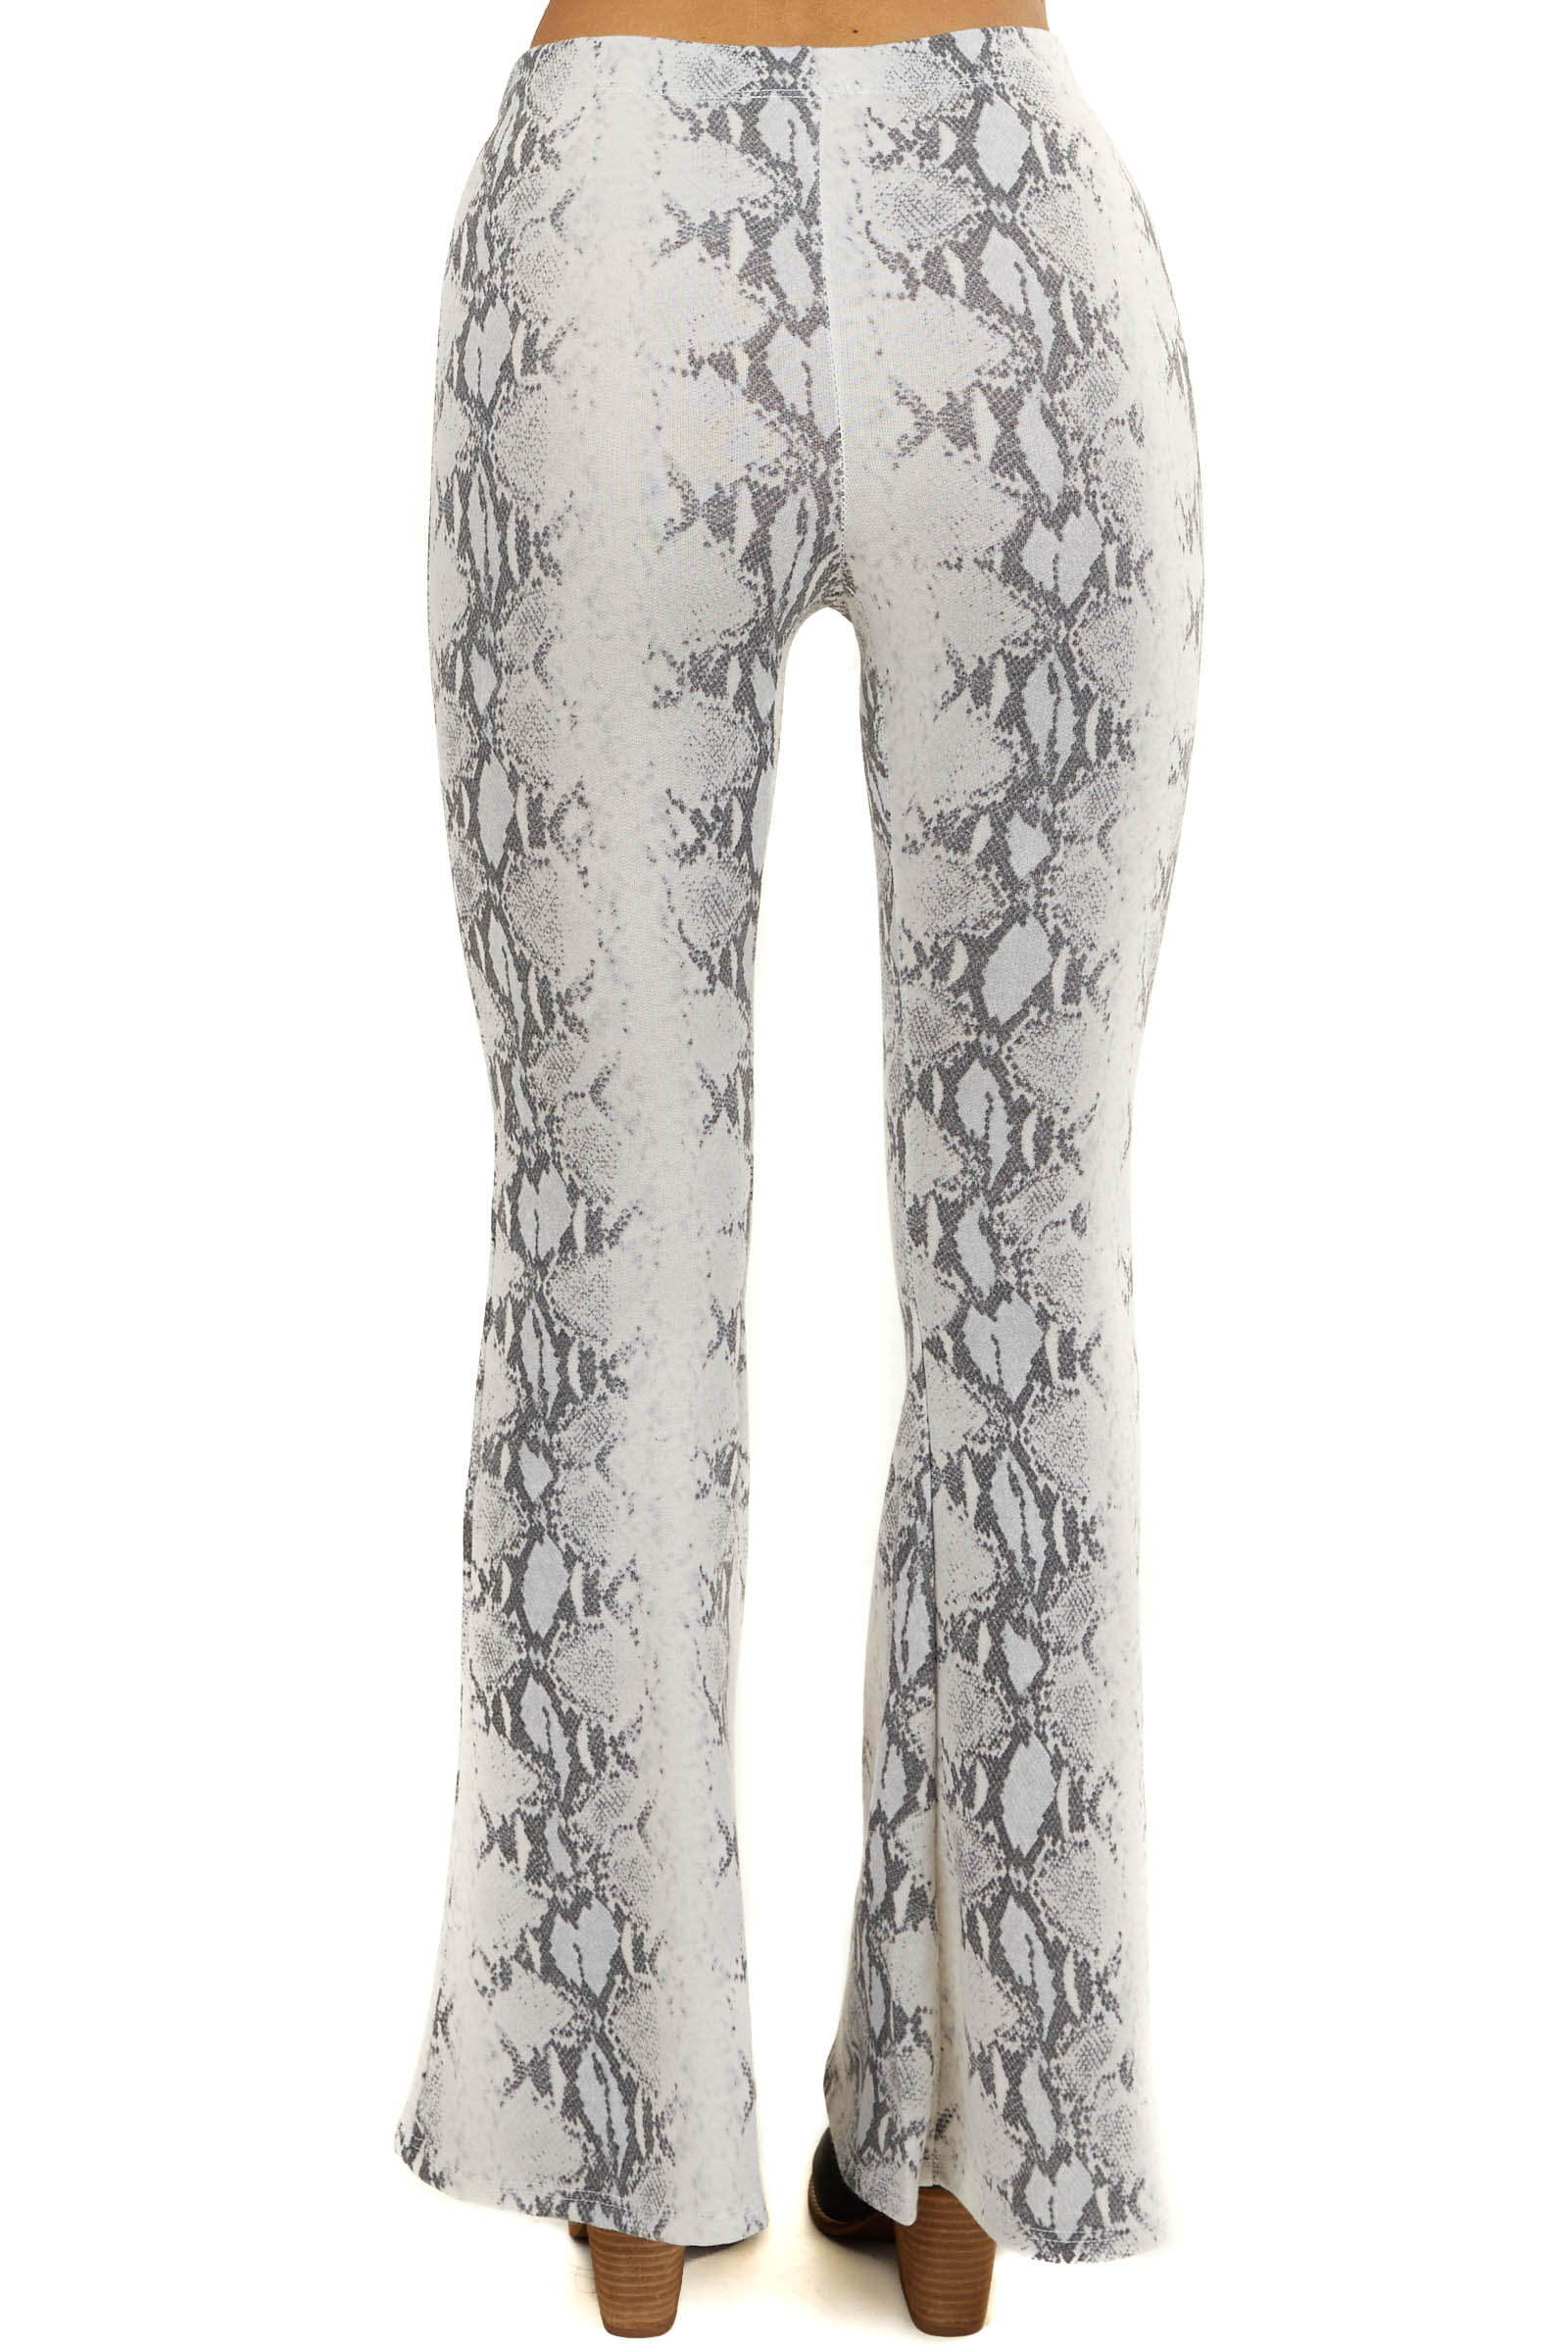 Ivory Snakeskin Bell Bottom Pants with Elastic Waistband